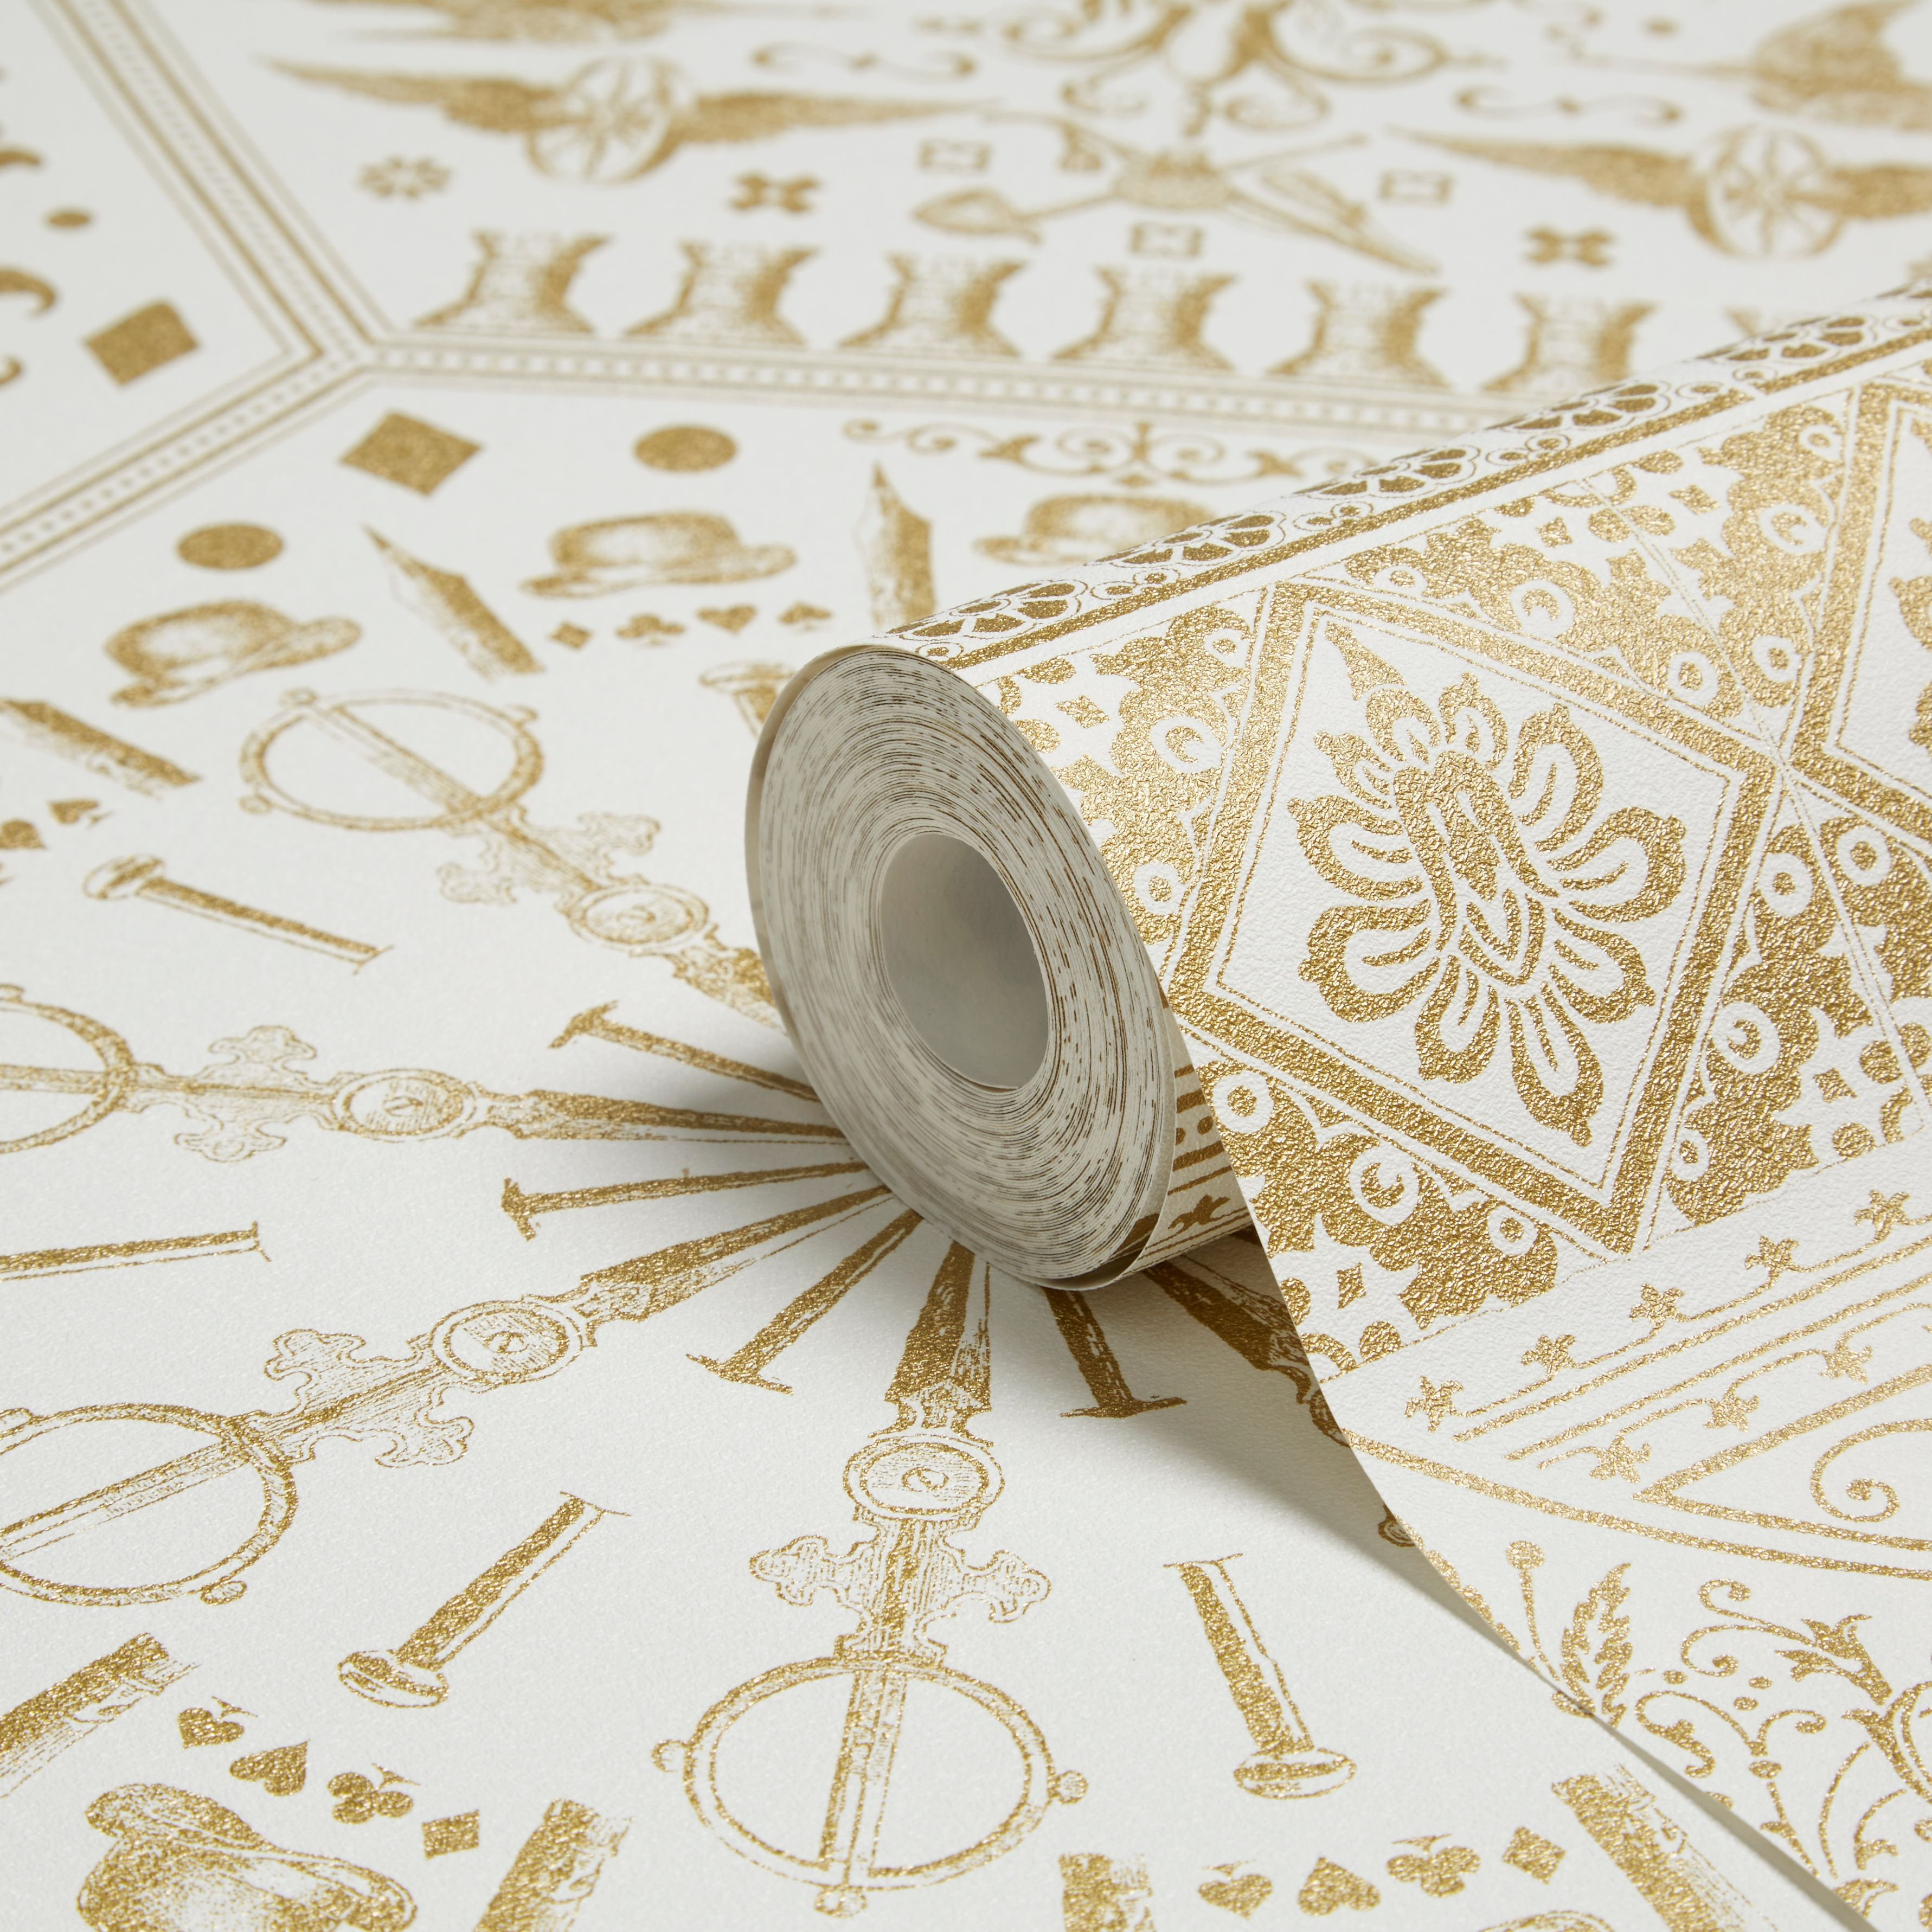 Graham & Brown Marcel Wanders Gold & White Floral Wallpaper